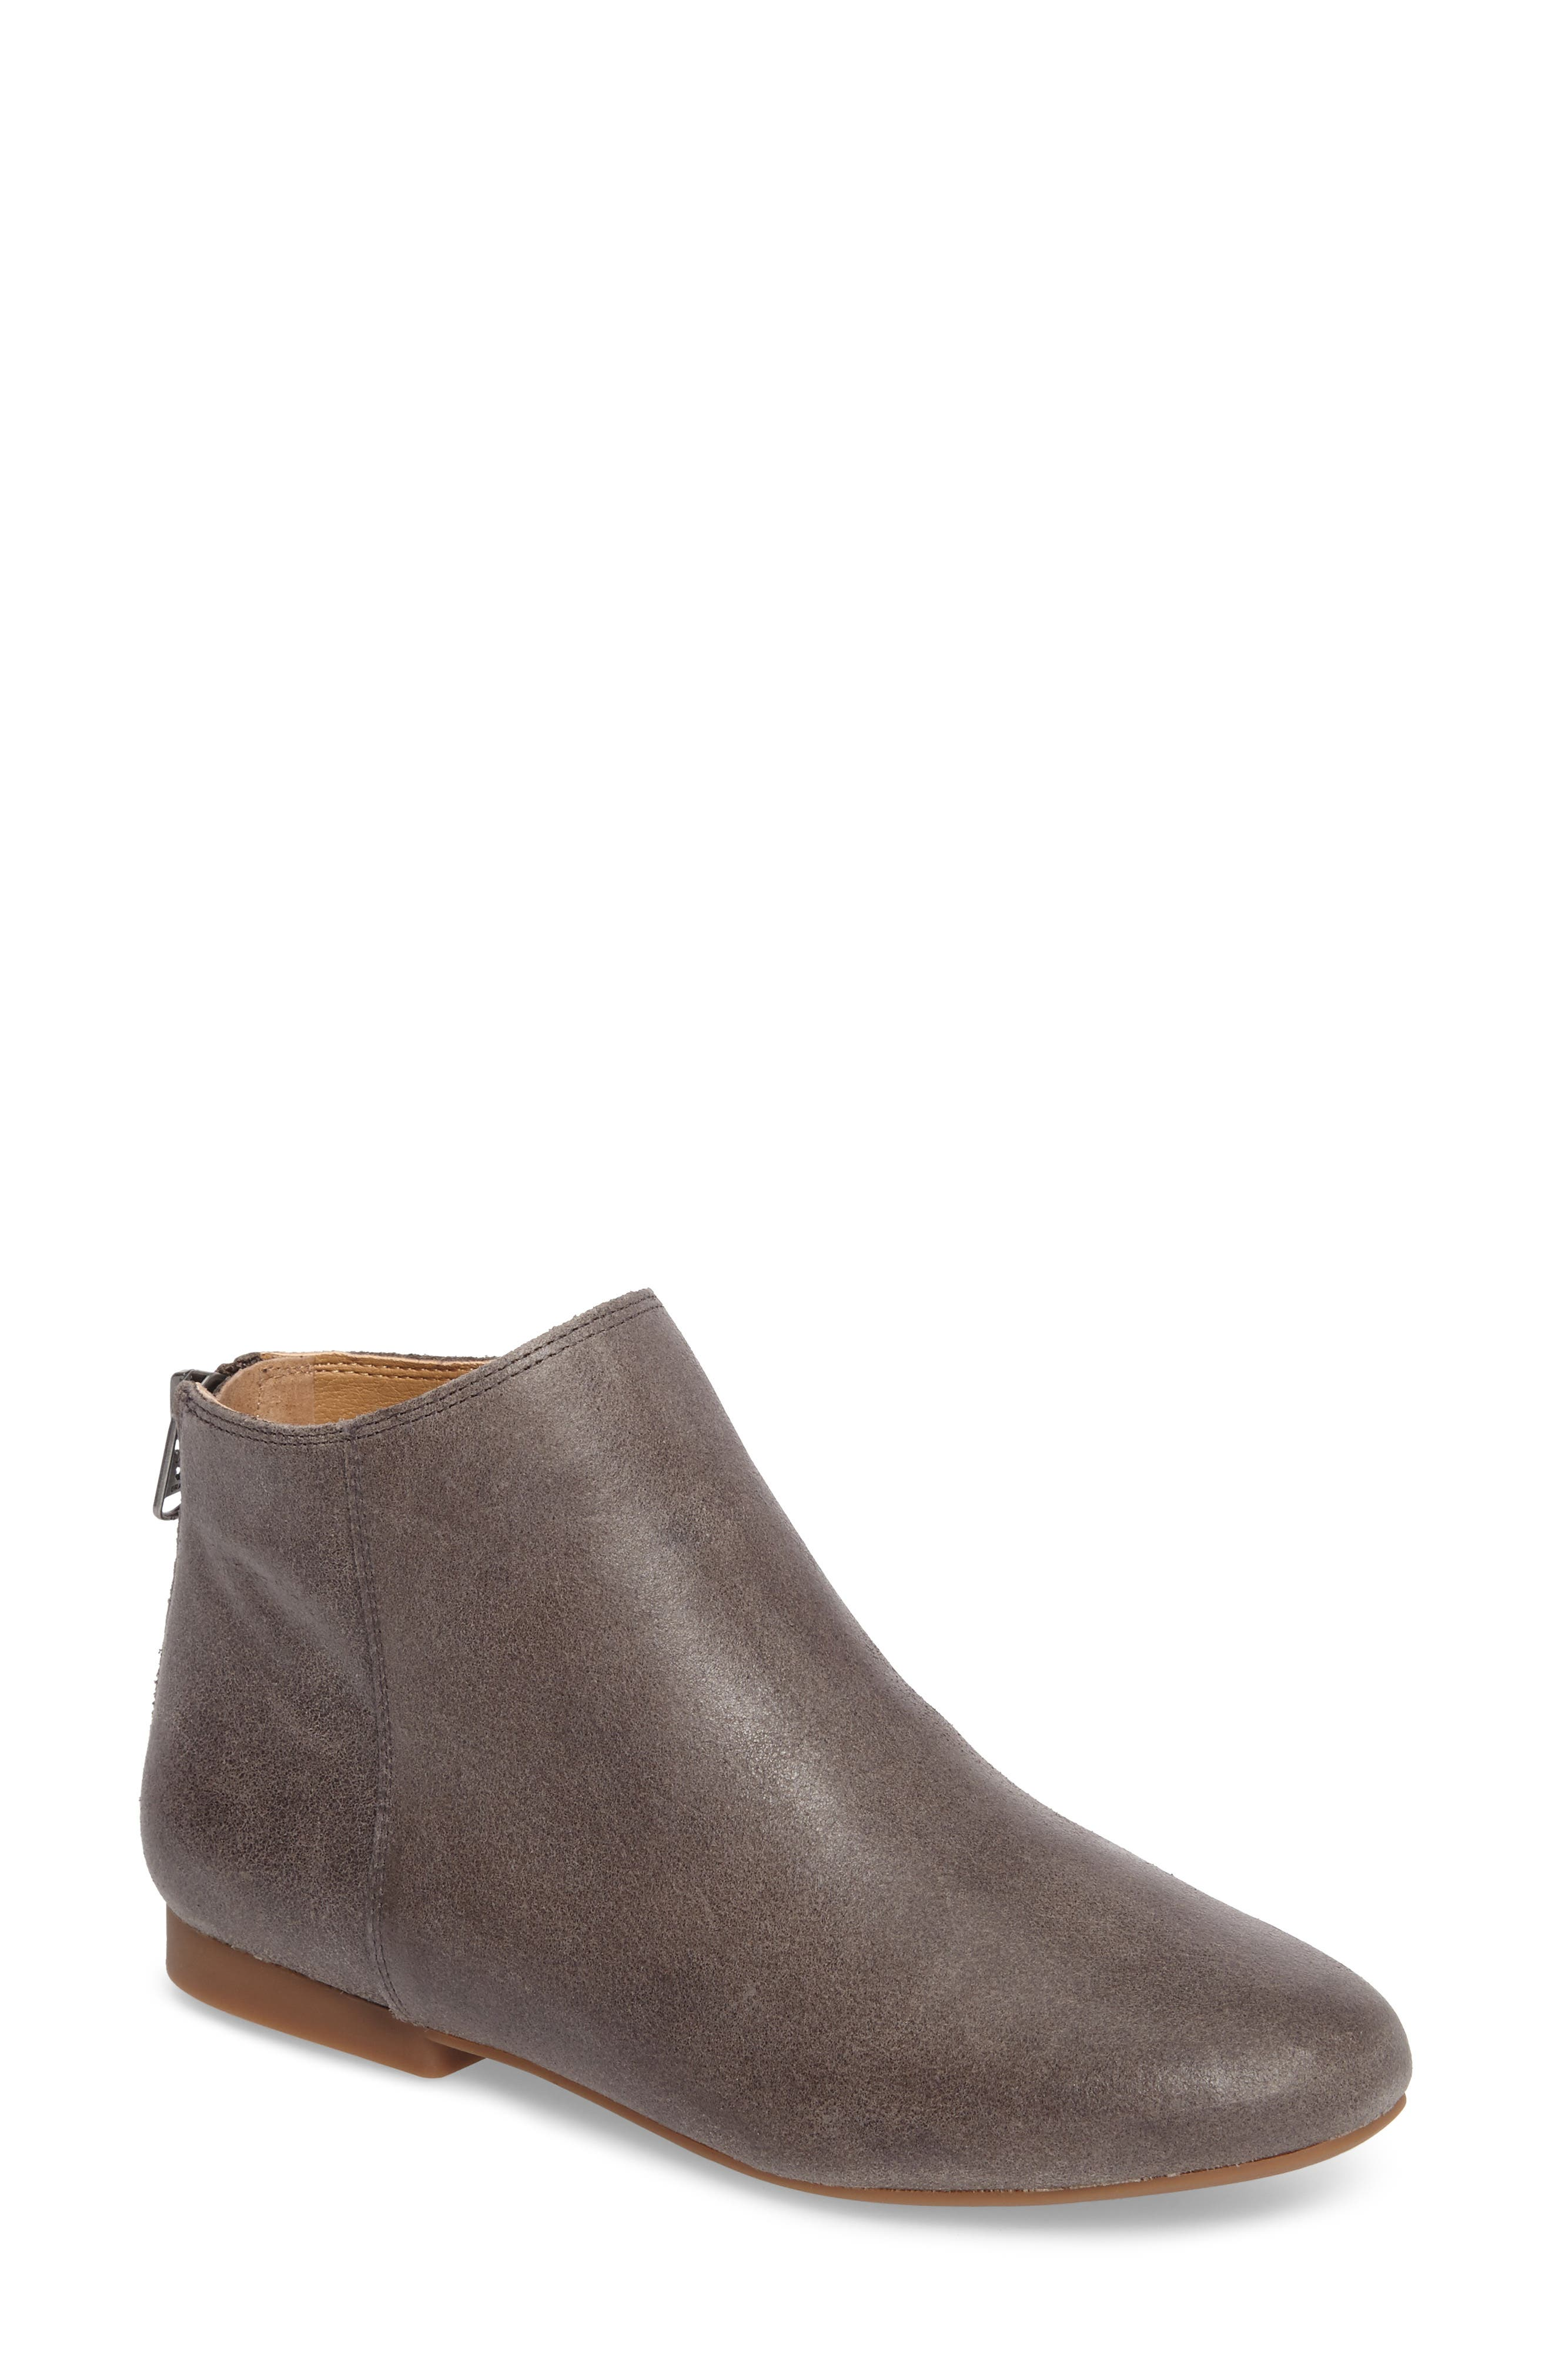 Main Image - Lucky Brand Gaines Bootie (Women)